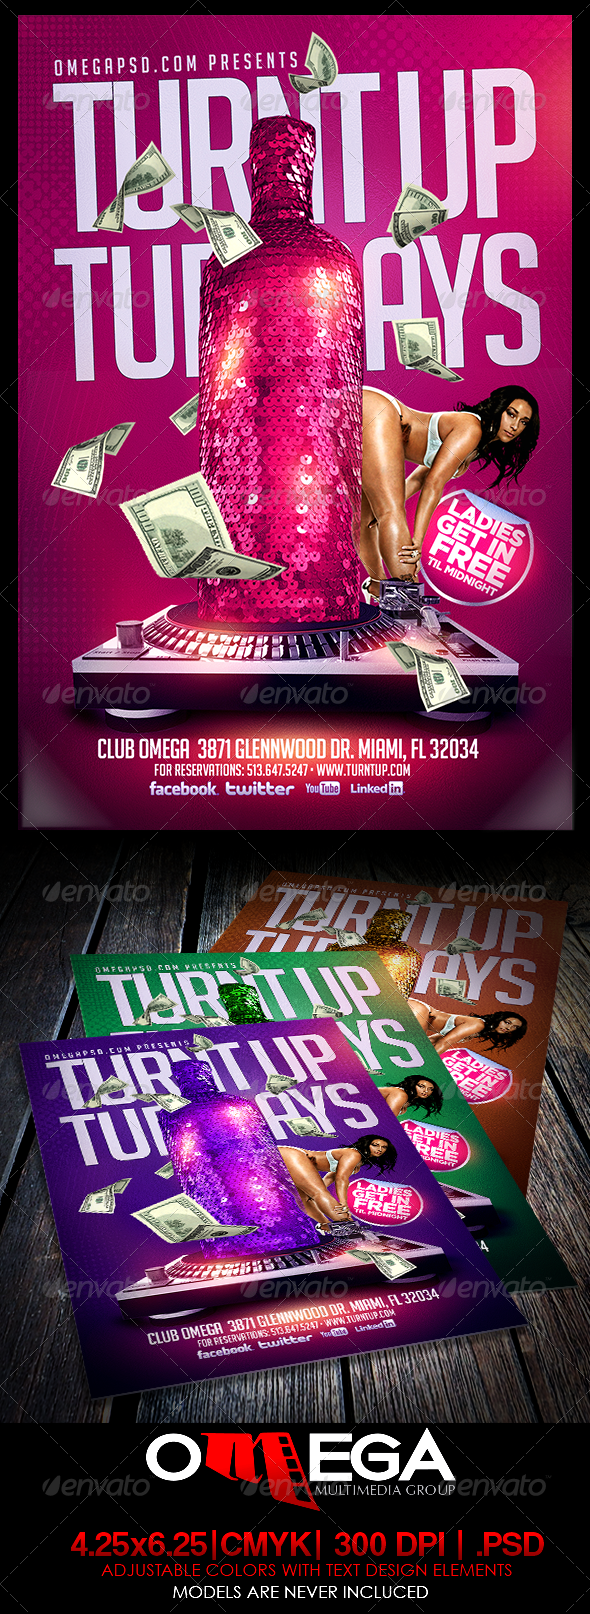 GraphicRiver Turnt Up Tuesdays 6883704